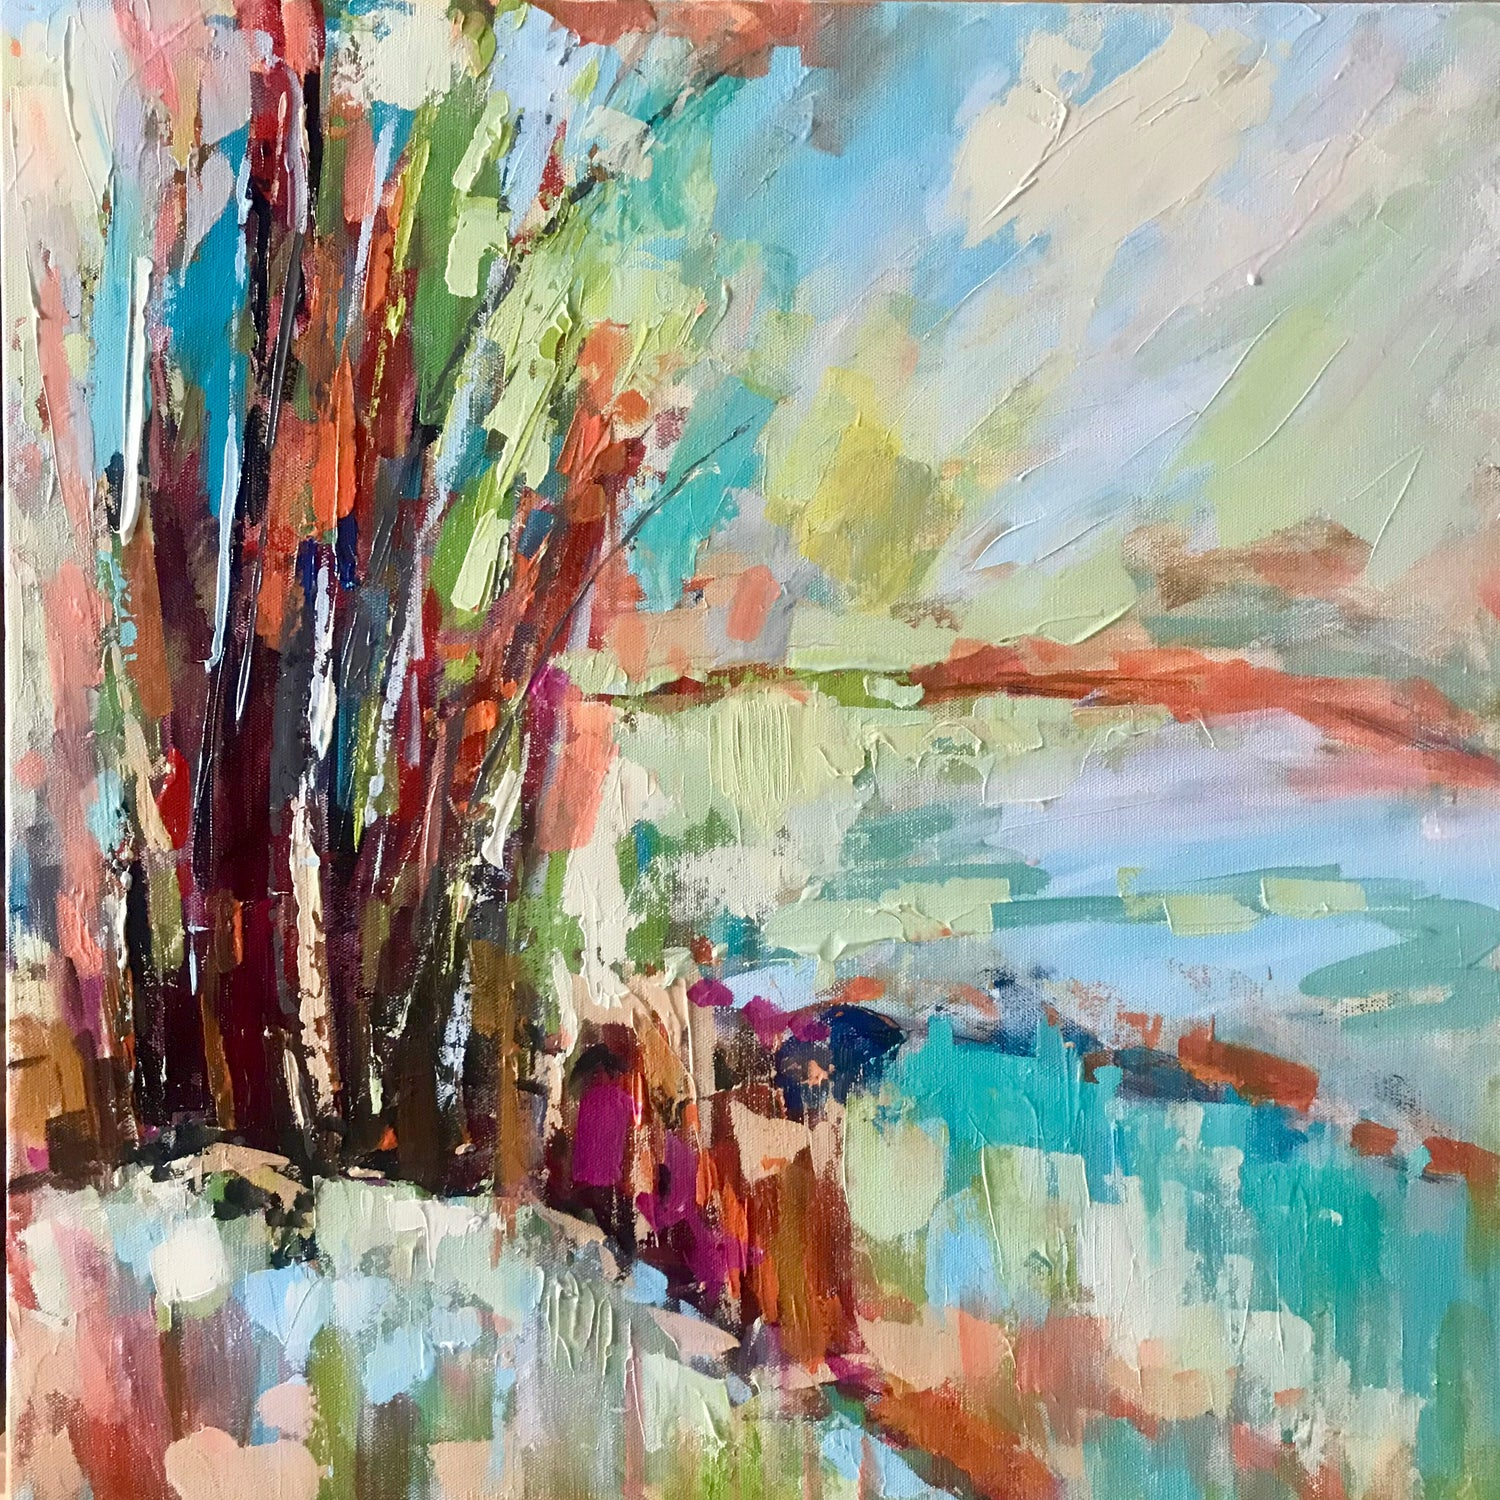 Abstract Landscape I, Size 24 x 24